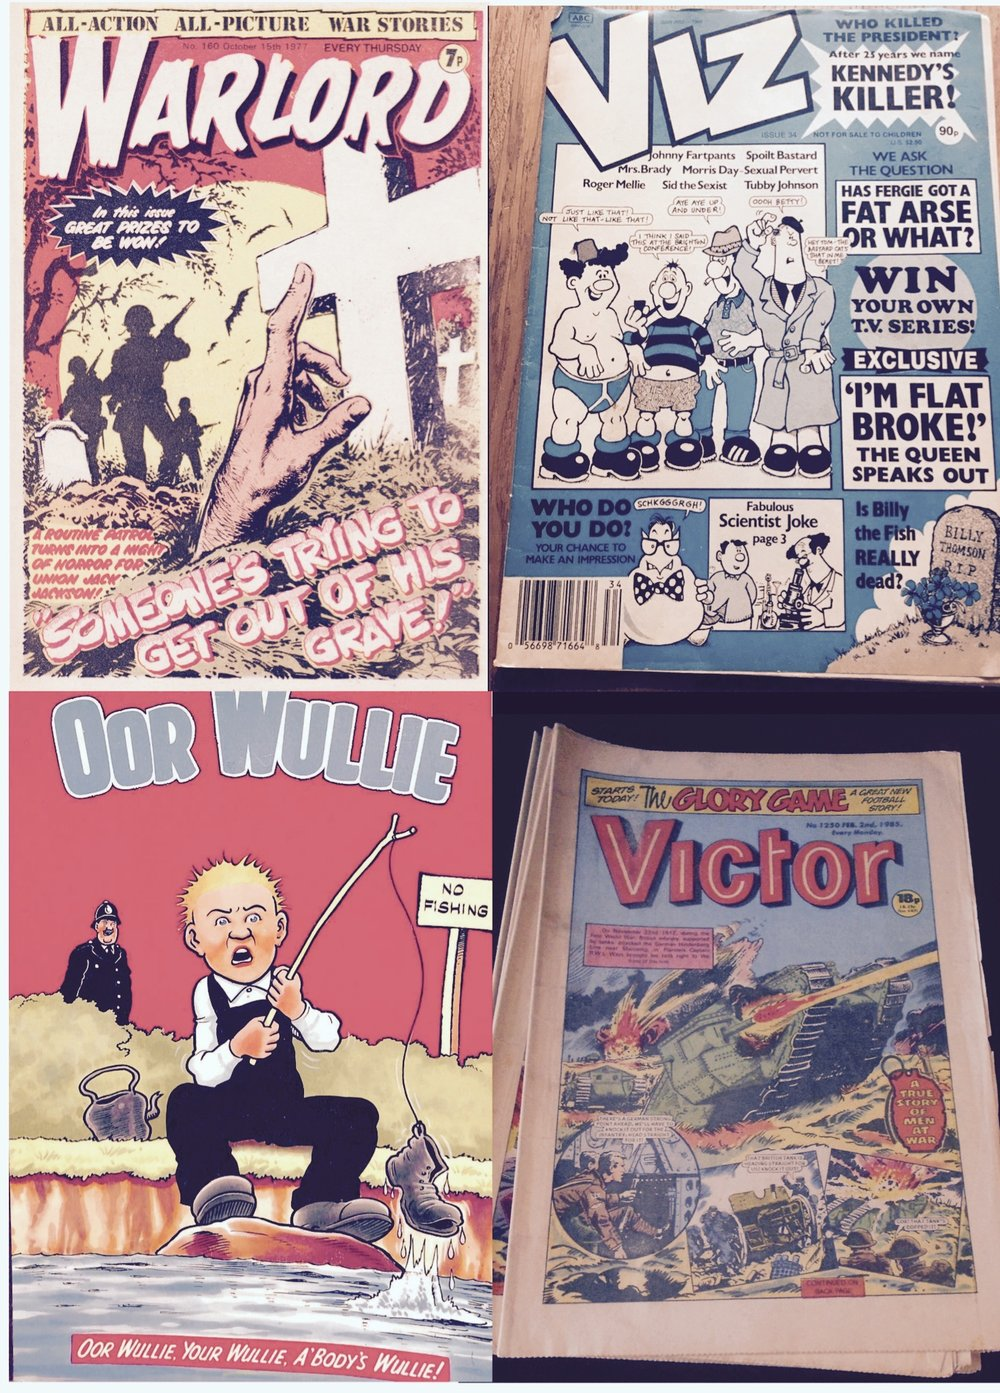 Above: Find copies of Warlord, Viz, Oor Wullie & Victor for sale online.